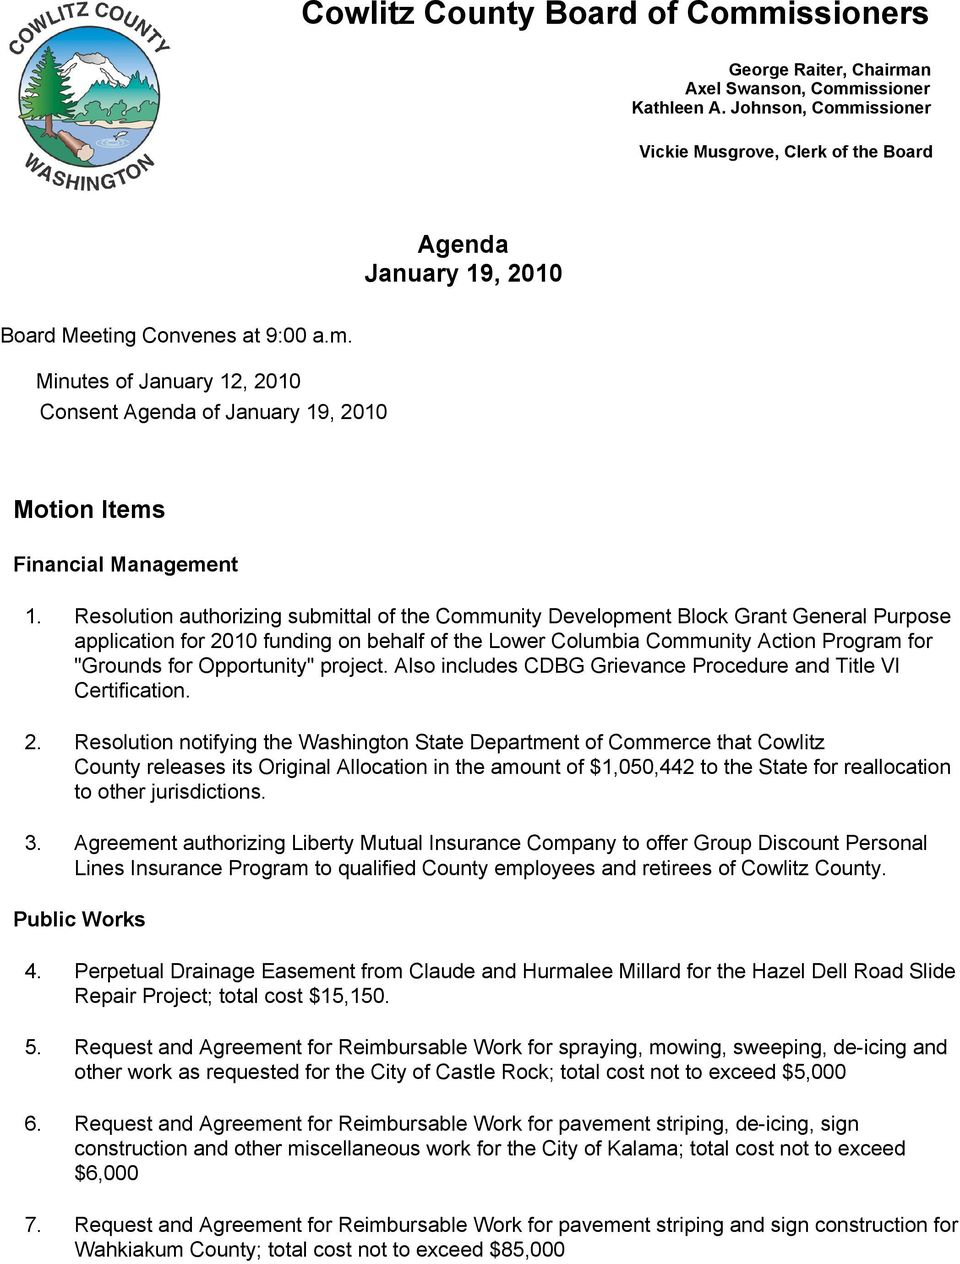 Cowlitz County Board of Commissioners - PDF